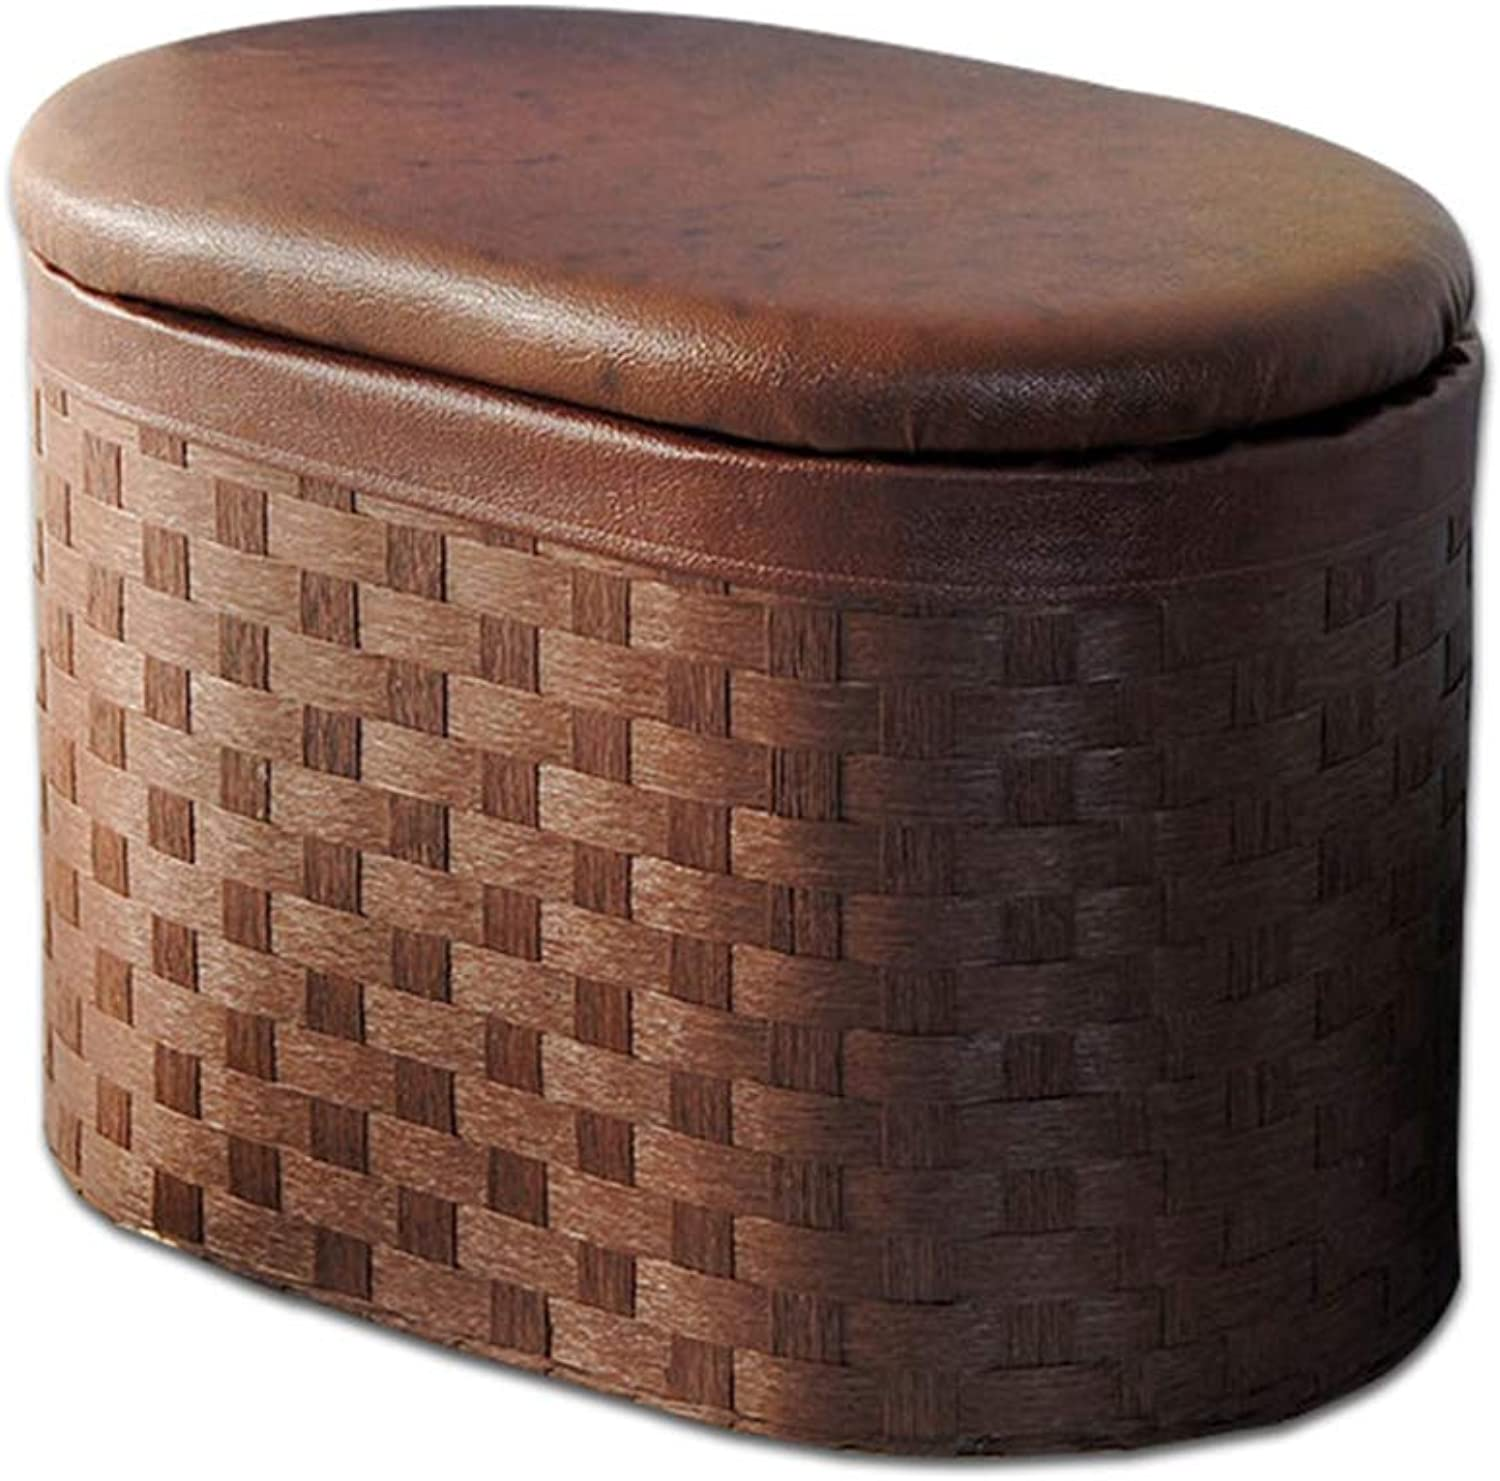 Storage Stool shoes Bench Hand-Woven Brown Oval Creative Multi-Function Stool (Size   50  30  35 cm)